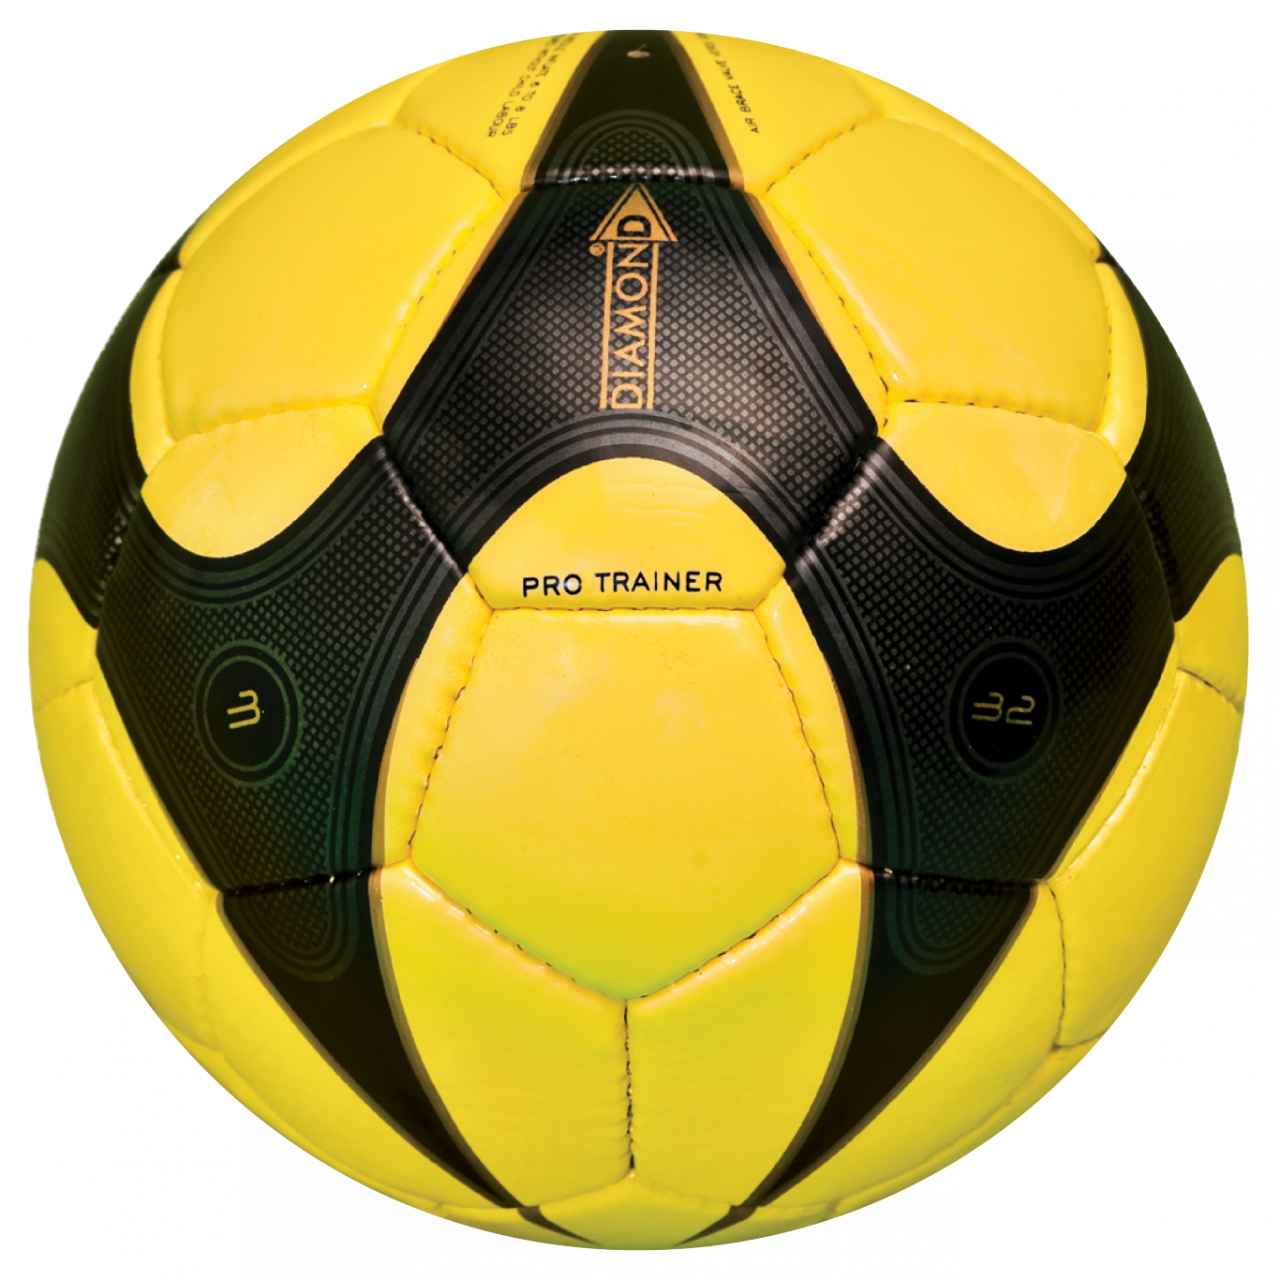 Pro Trainer Yellow Black Football